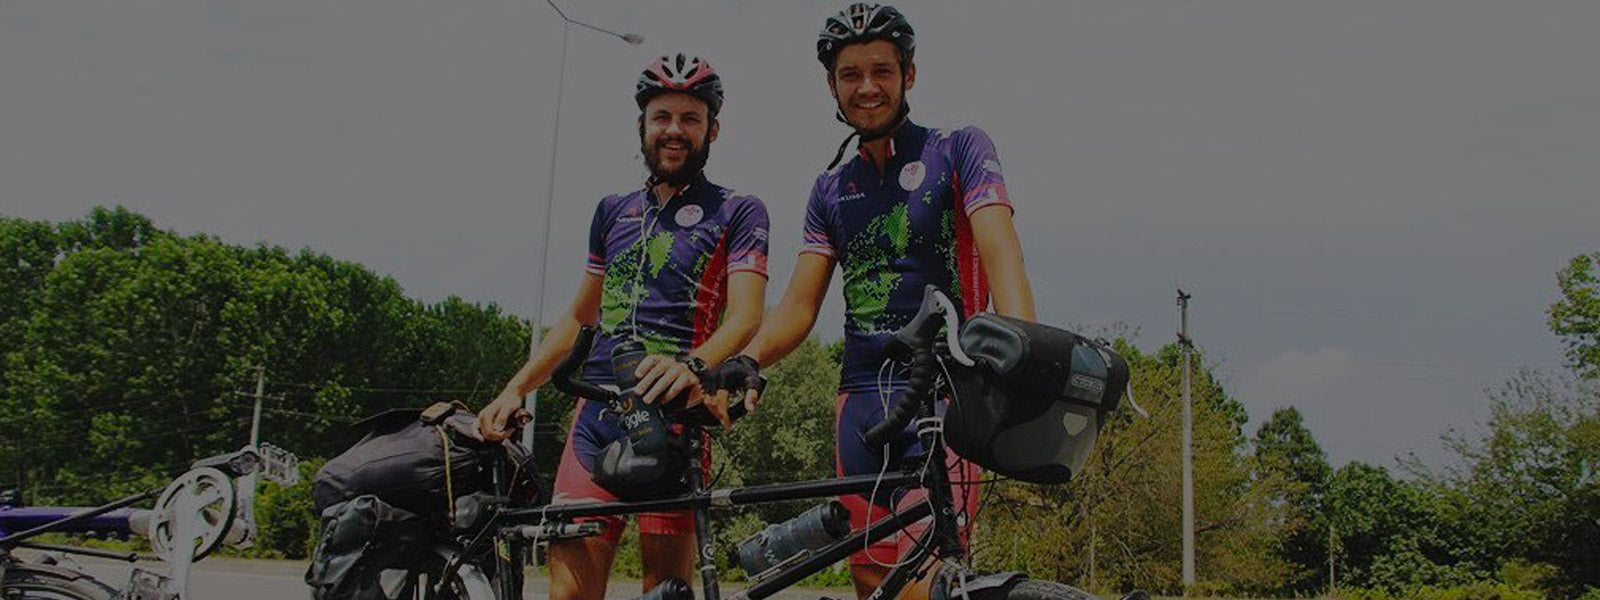 Circumnavigating the world by Tandem Bike